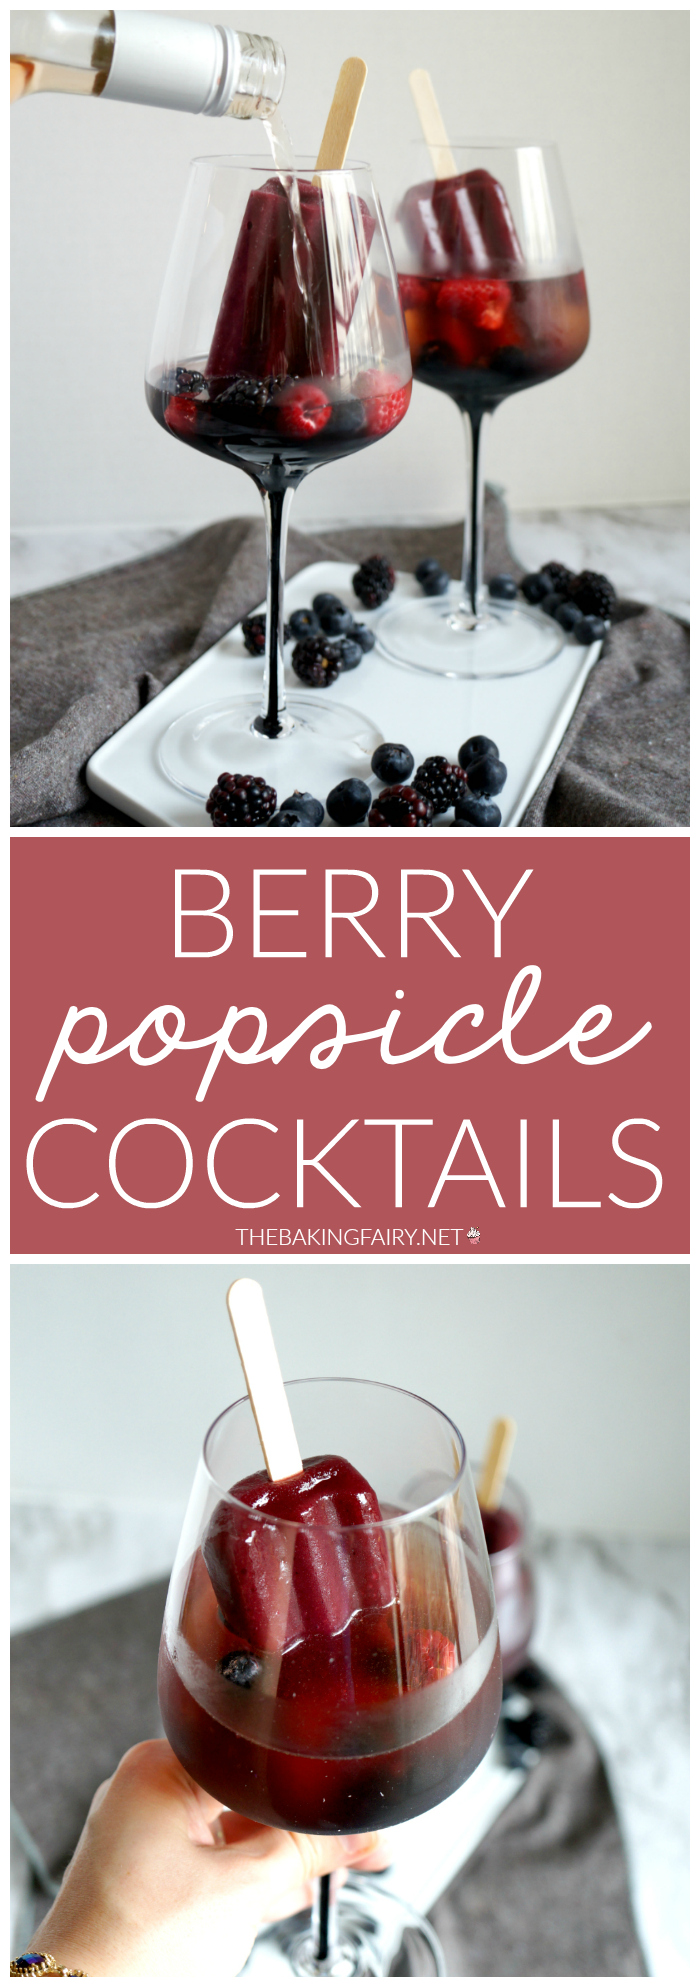 pinterest collage of berry popsicle cocktails